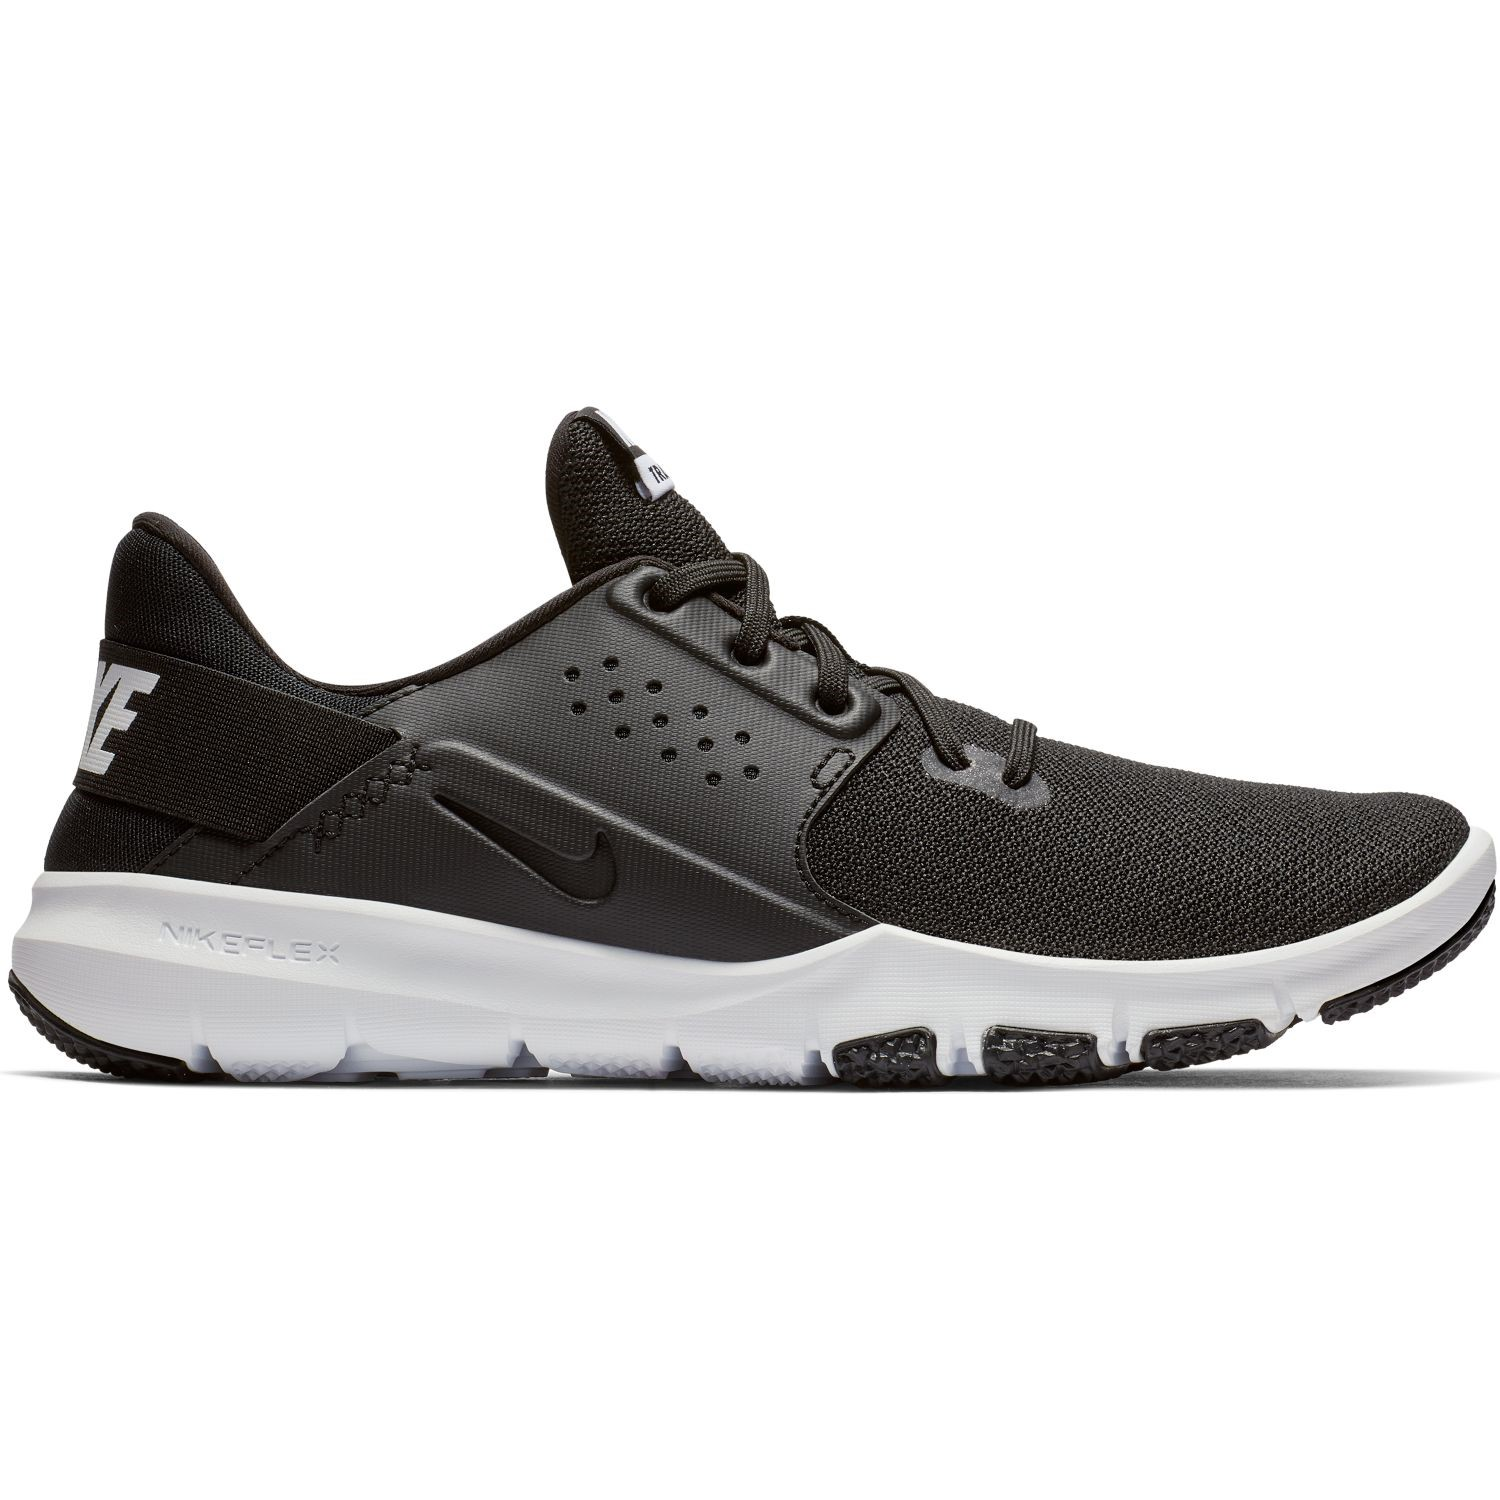 121068536e022 Nike Flex Control 3 - Mens Training Shoes - Black White Anthracite ...